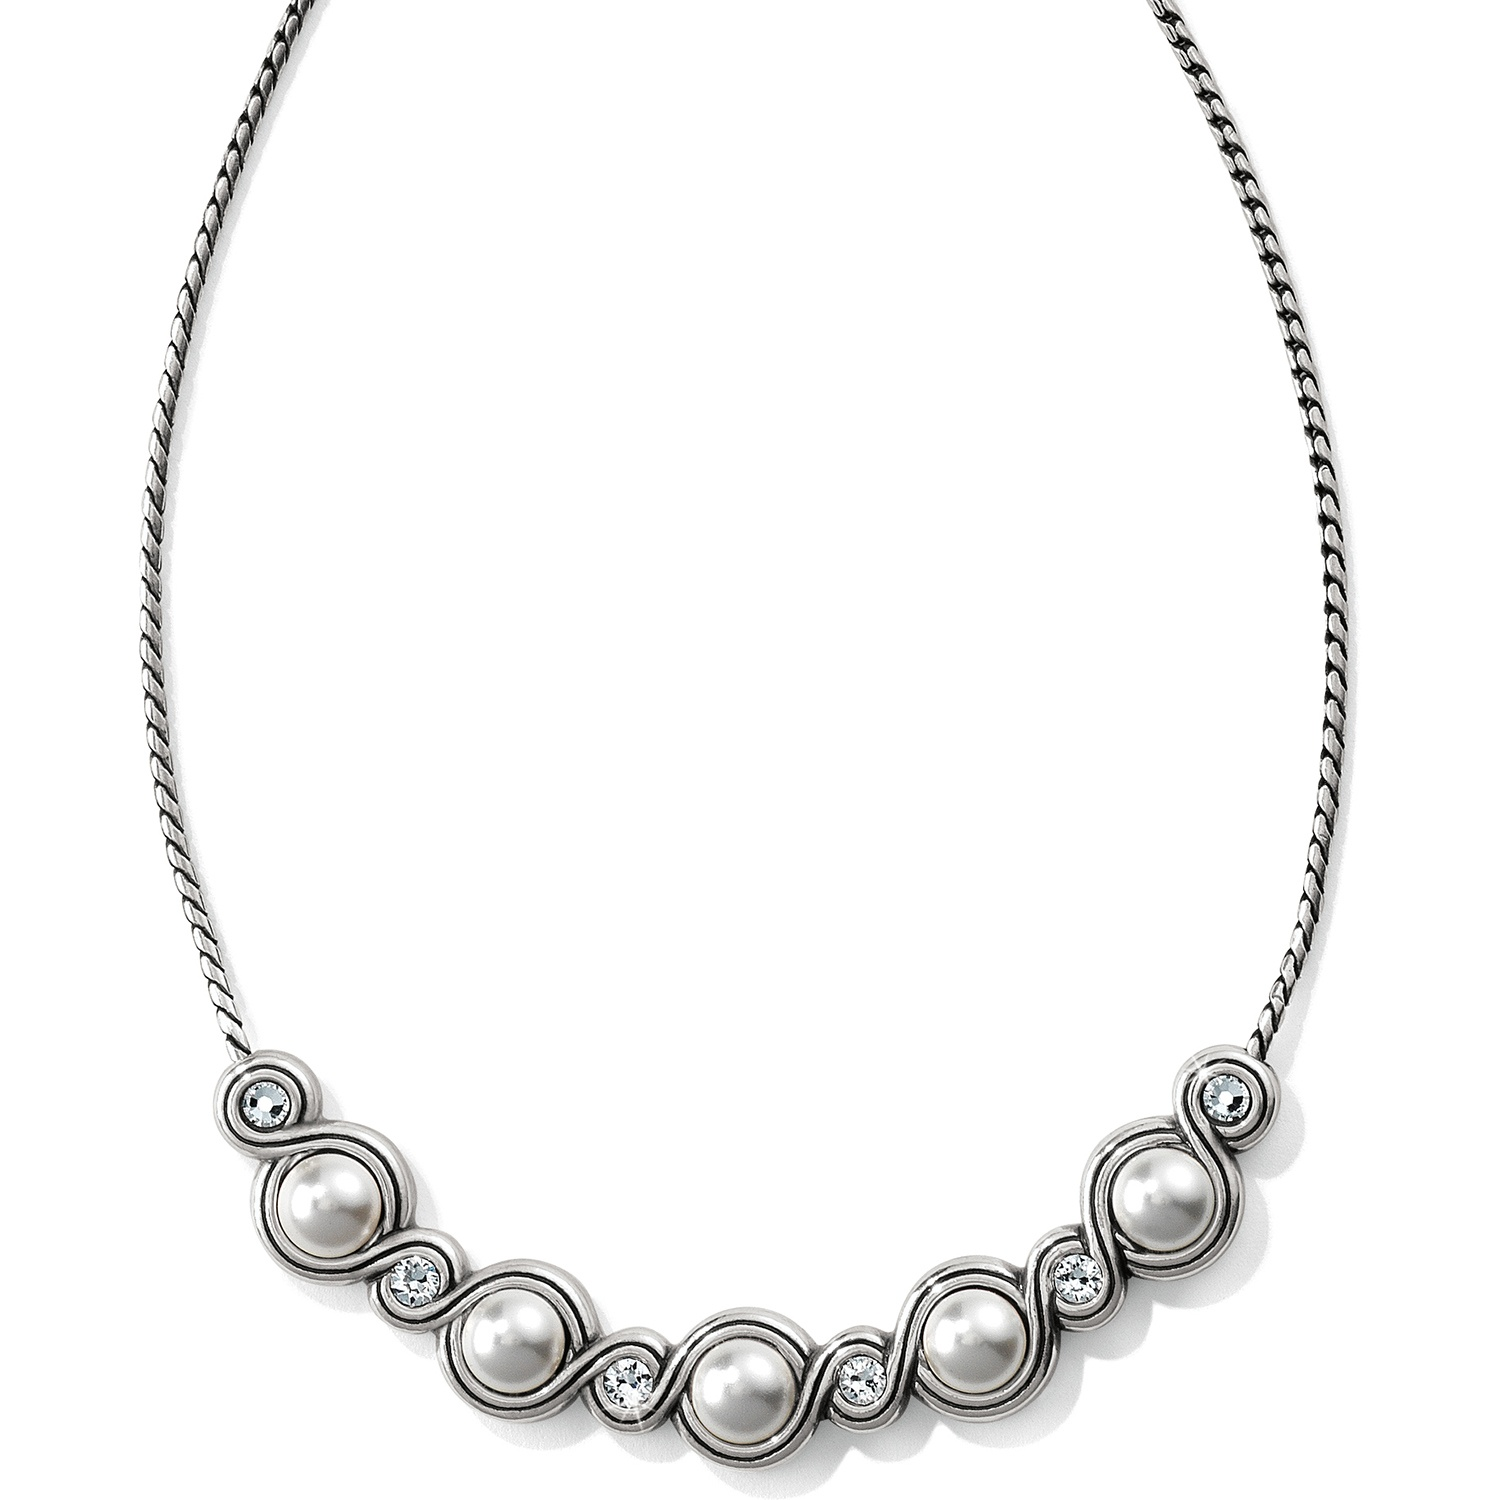 1500x1500 Infinity Sparkle Infinity Pearl Necklace Necklaces